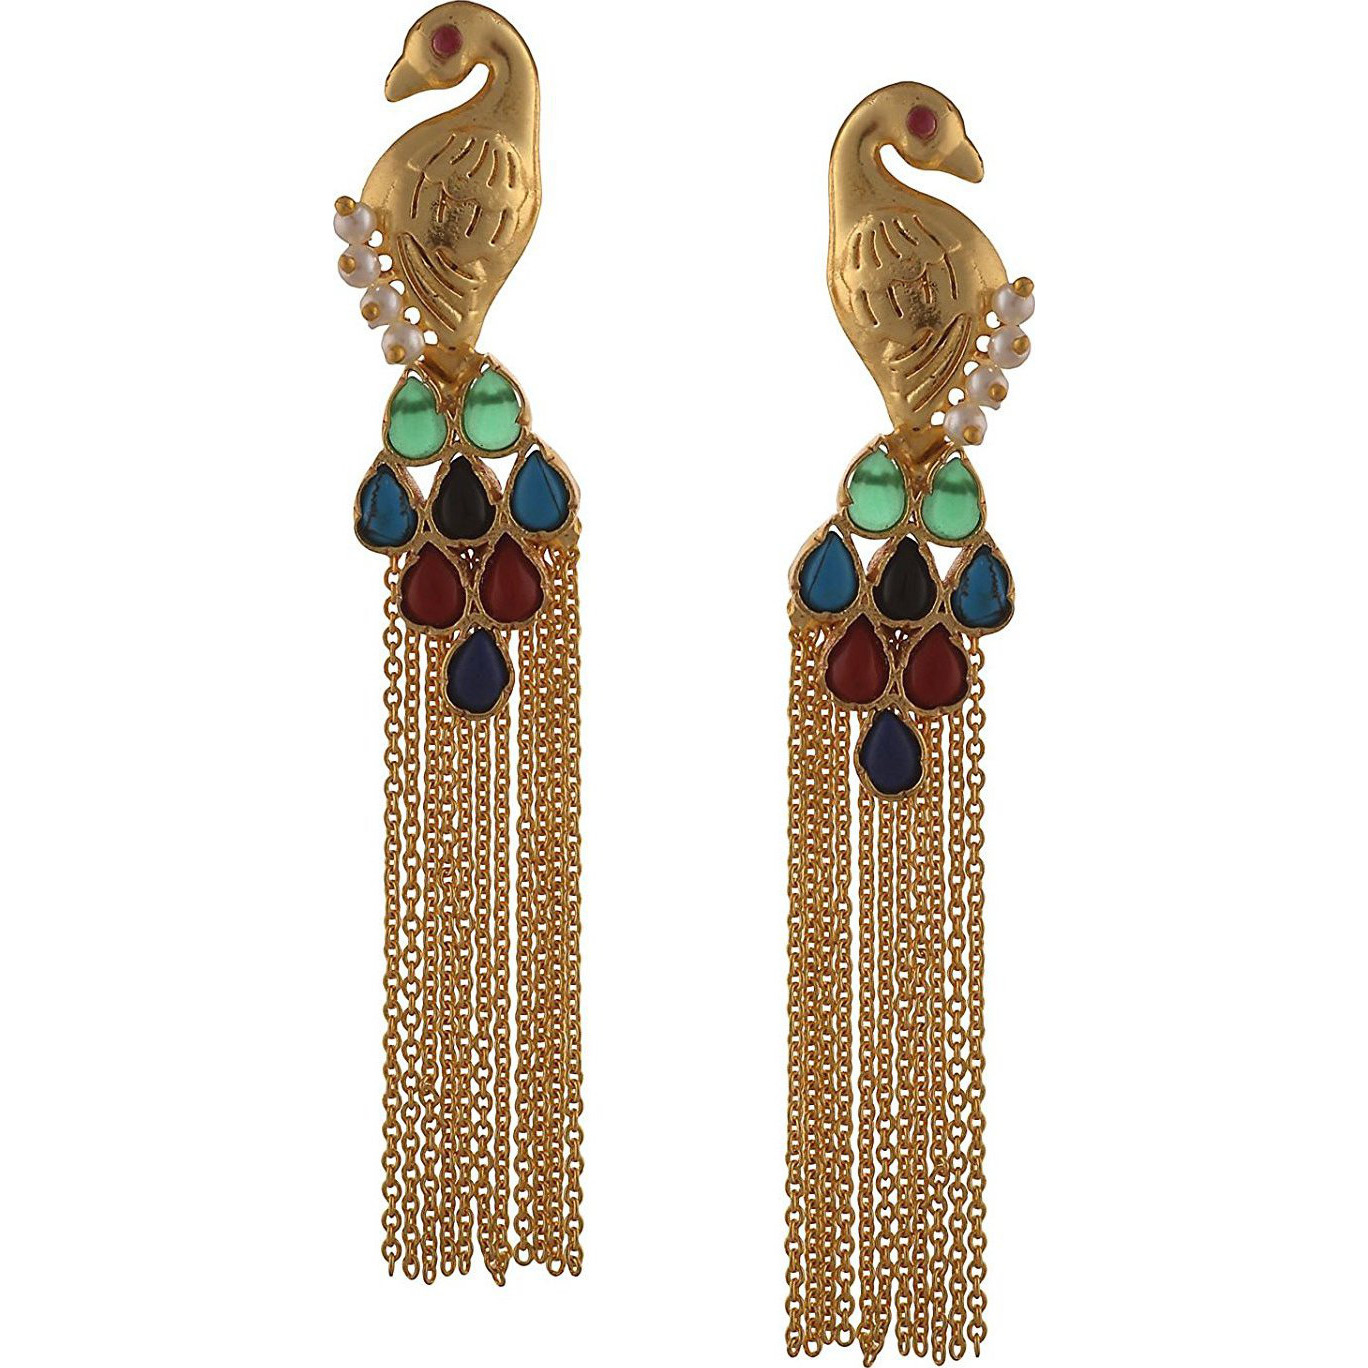 Zephyrr Traditional 18k Gold Plated Handmade Jadau Hanging Earrings Pearls Onyx: Jewelry